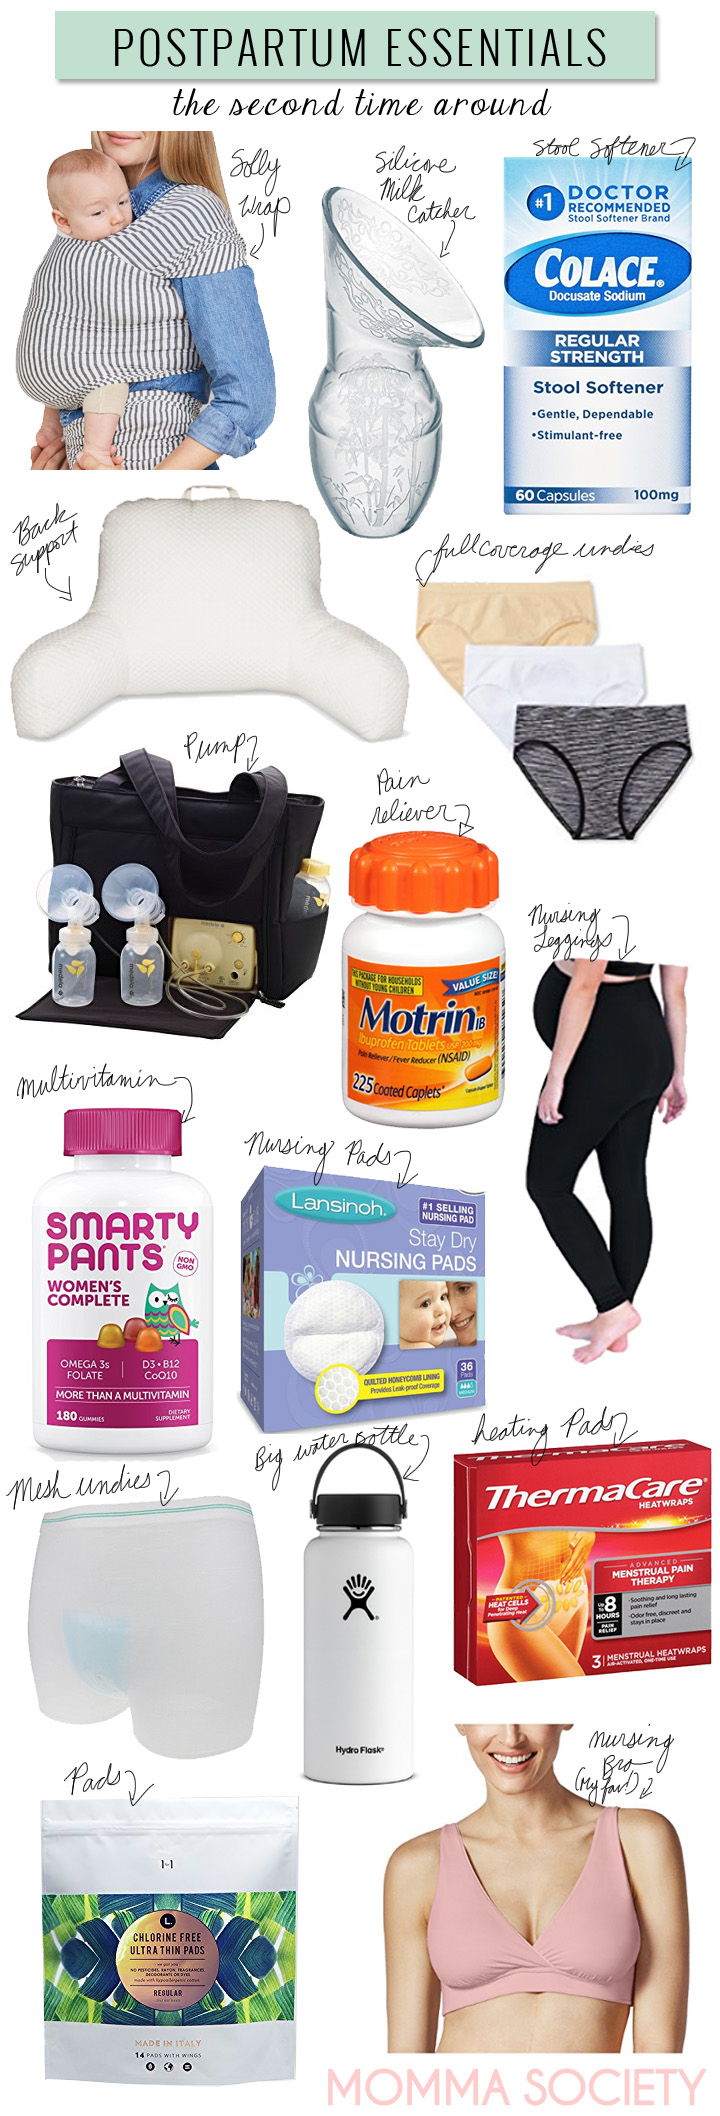 Postpartum Essentials Birth Hospital Bag Packing List.jpg